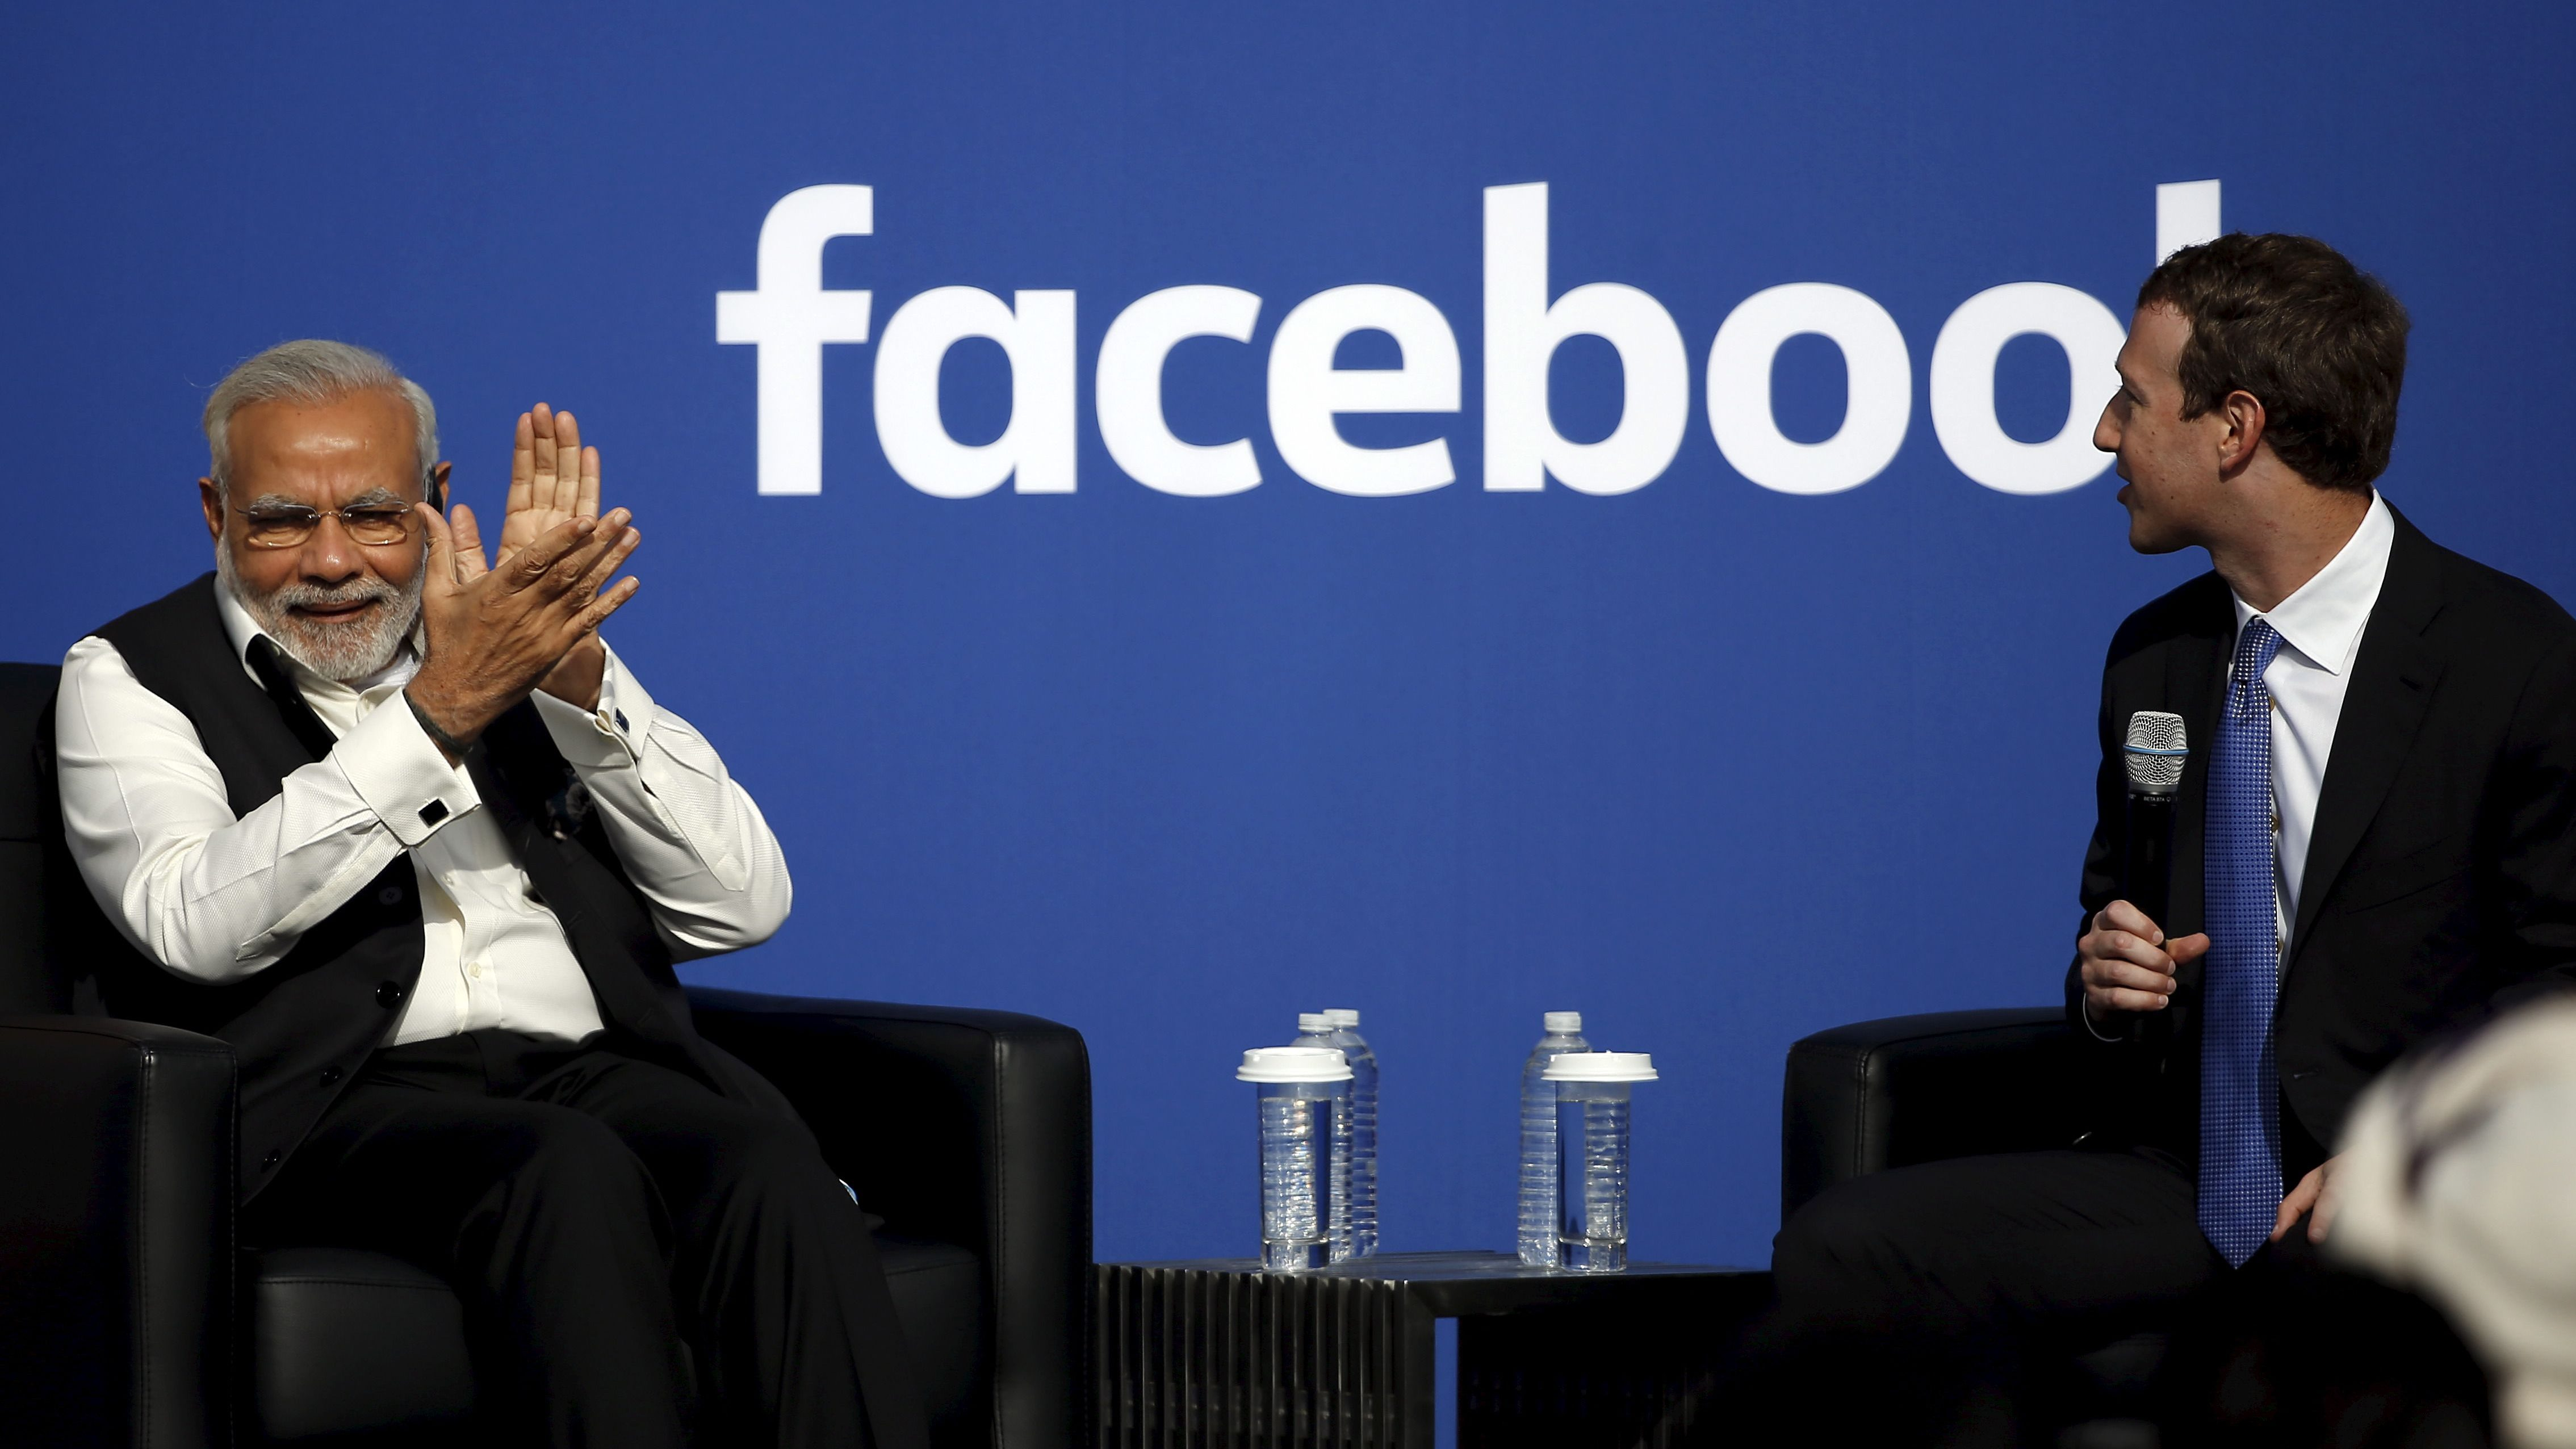 Indian Prime Minister Narendra Modi applauds as Facebook CEO Mark Zuckerberg speaks on stage during a town hall at Facebook's headquarters in Menlo Park, California September 27, 2015.